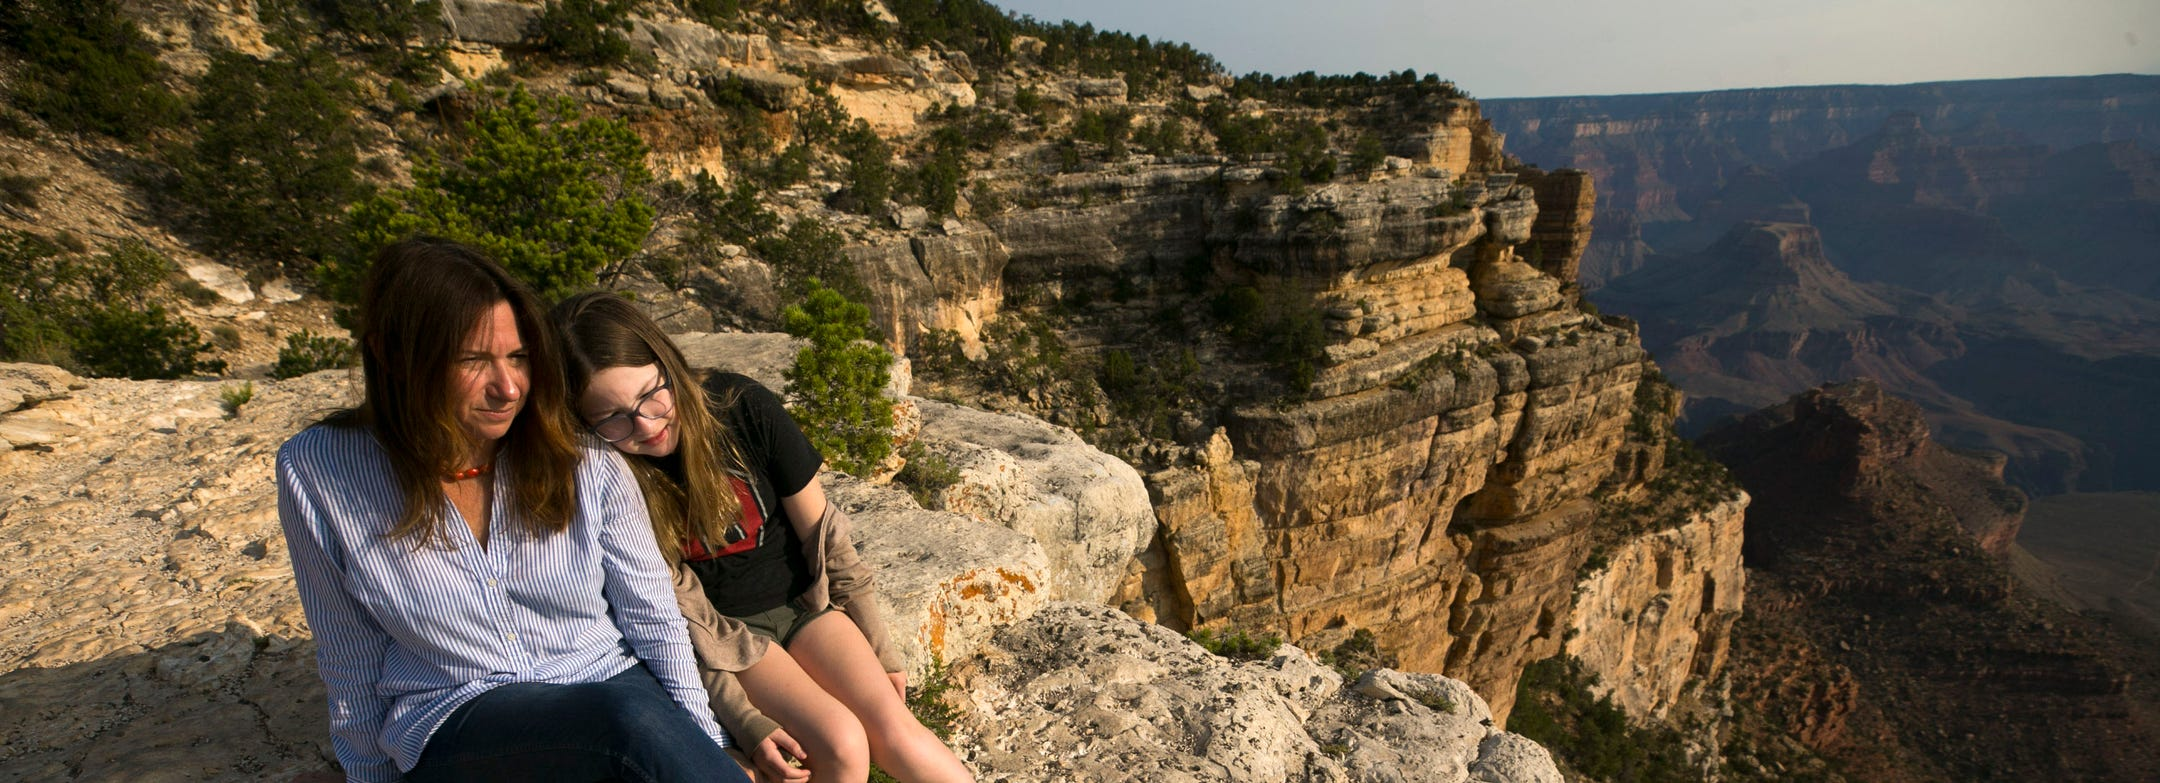 Suicide: My mom took her life at the Grand Canyon – and I wanted a why